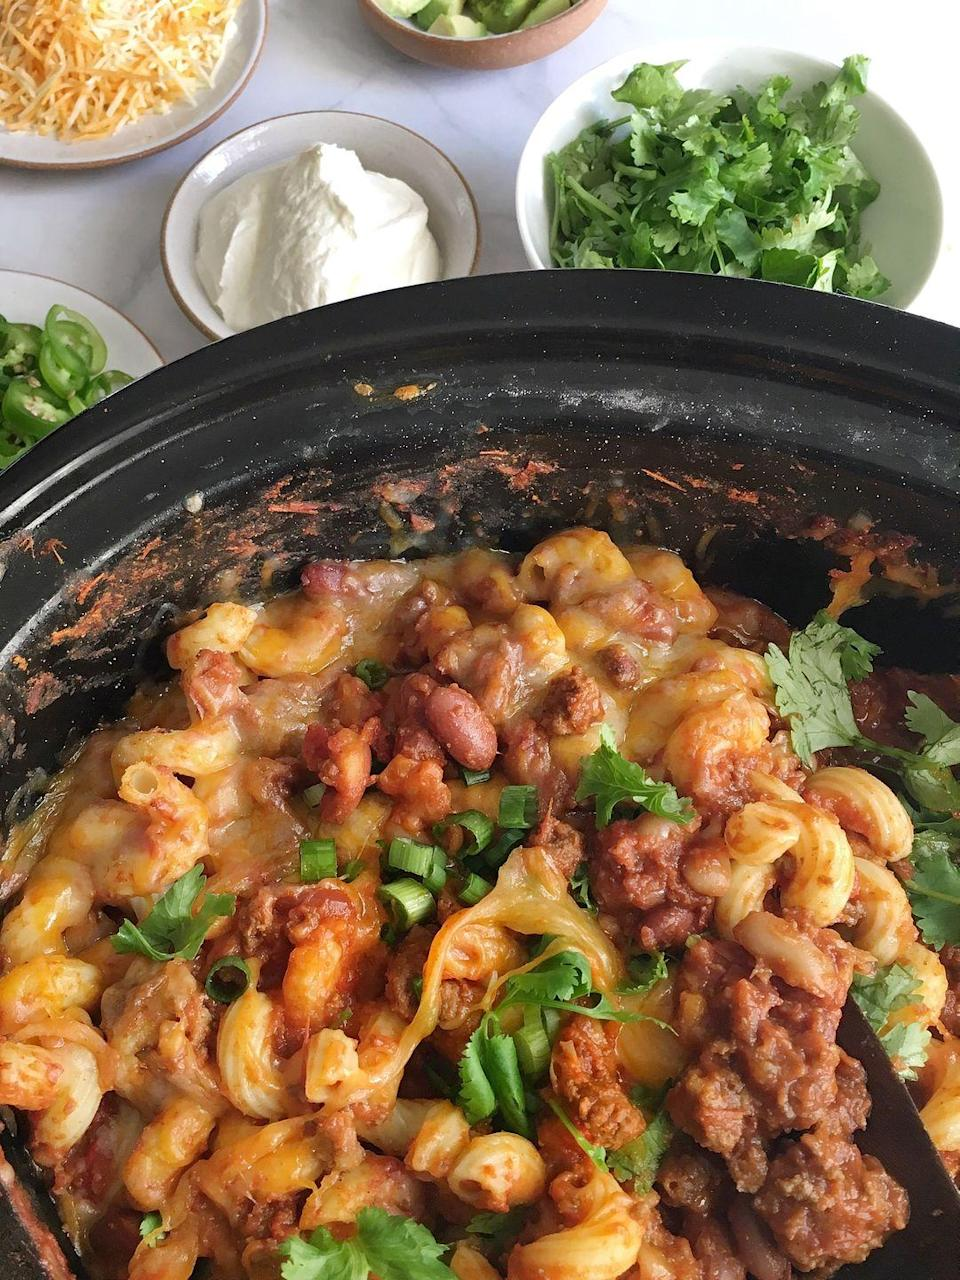 """<p>Put in a little bit of prep in the morning, come home to an insanely delish dinner.</p><p>Get the recipe from <a href=""""/cooking/recipe-ideas/recipes/a45389/slow-cooker-chili-mac-n-cheese-recipe/"""" data-ylk=""""slk:Delish"""" class=""""link rapid-noclick-resp"""">Delish</a>.</p>"""